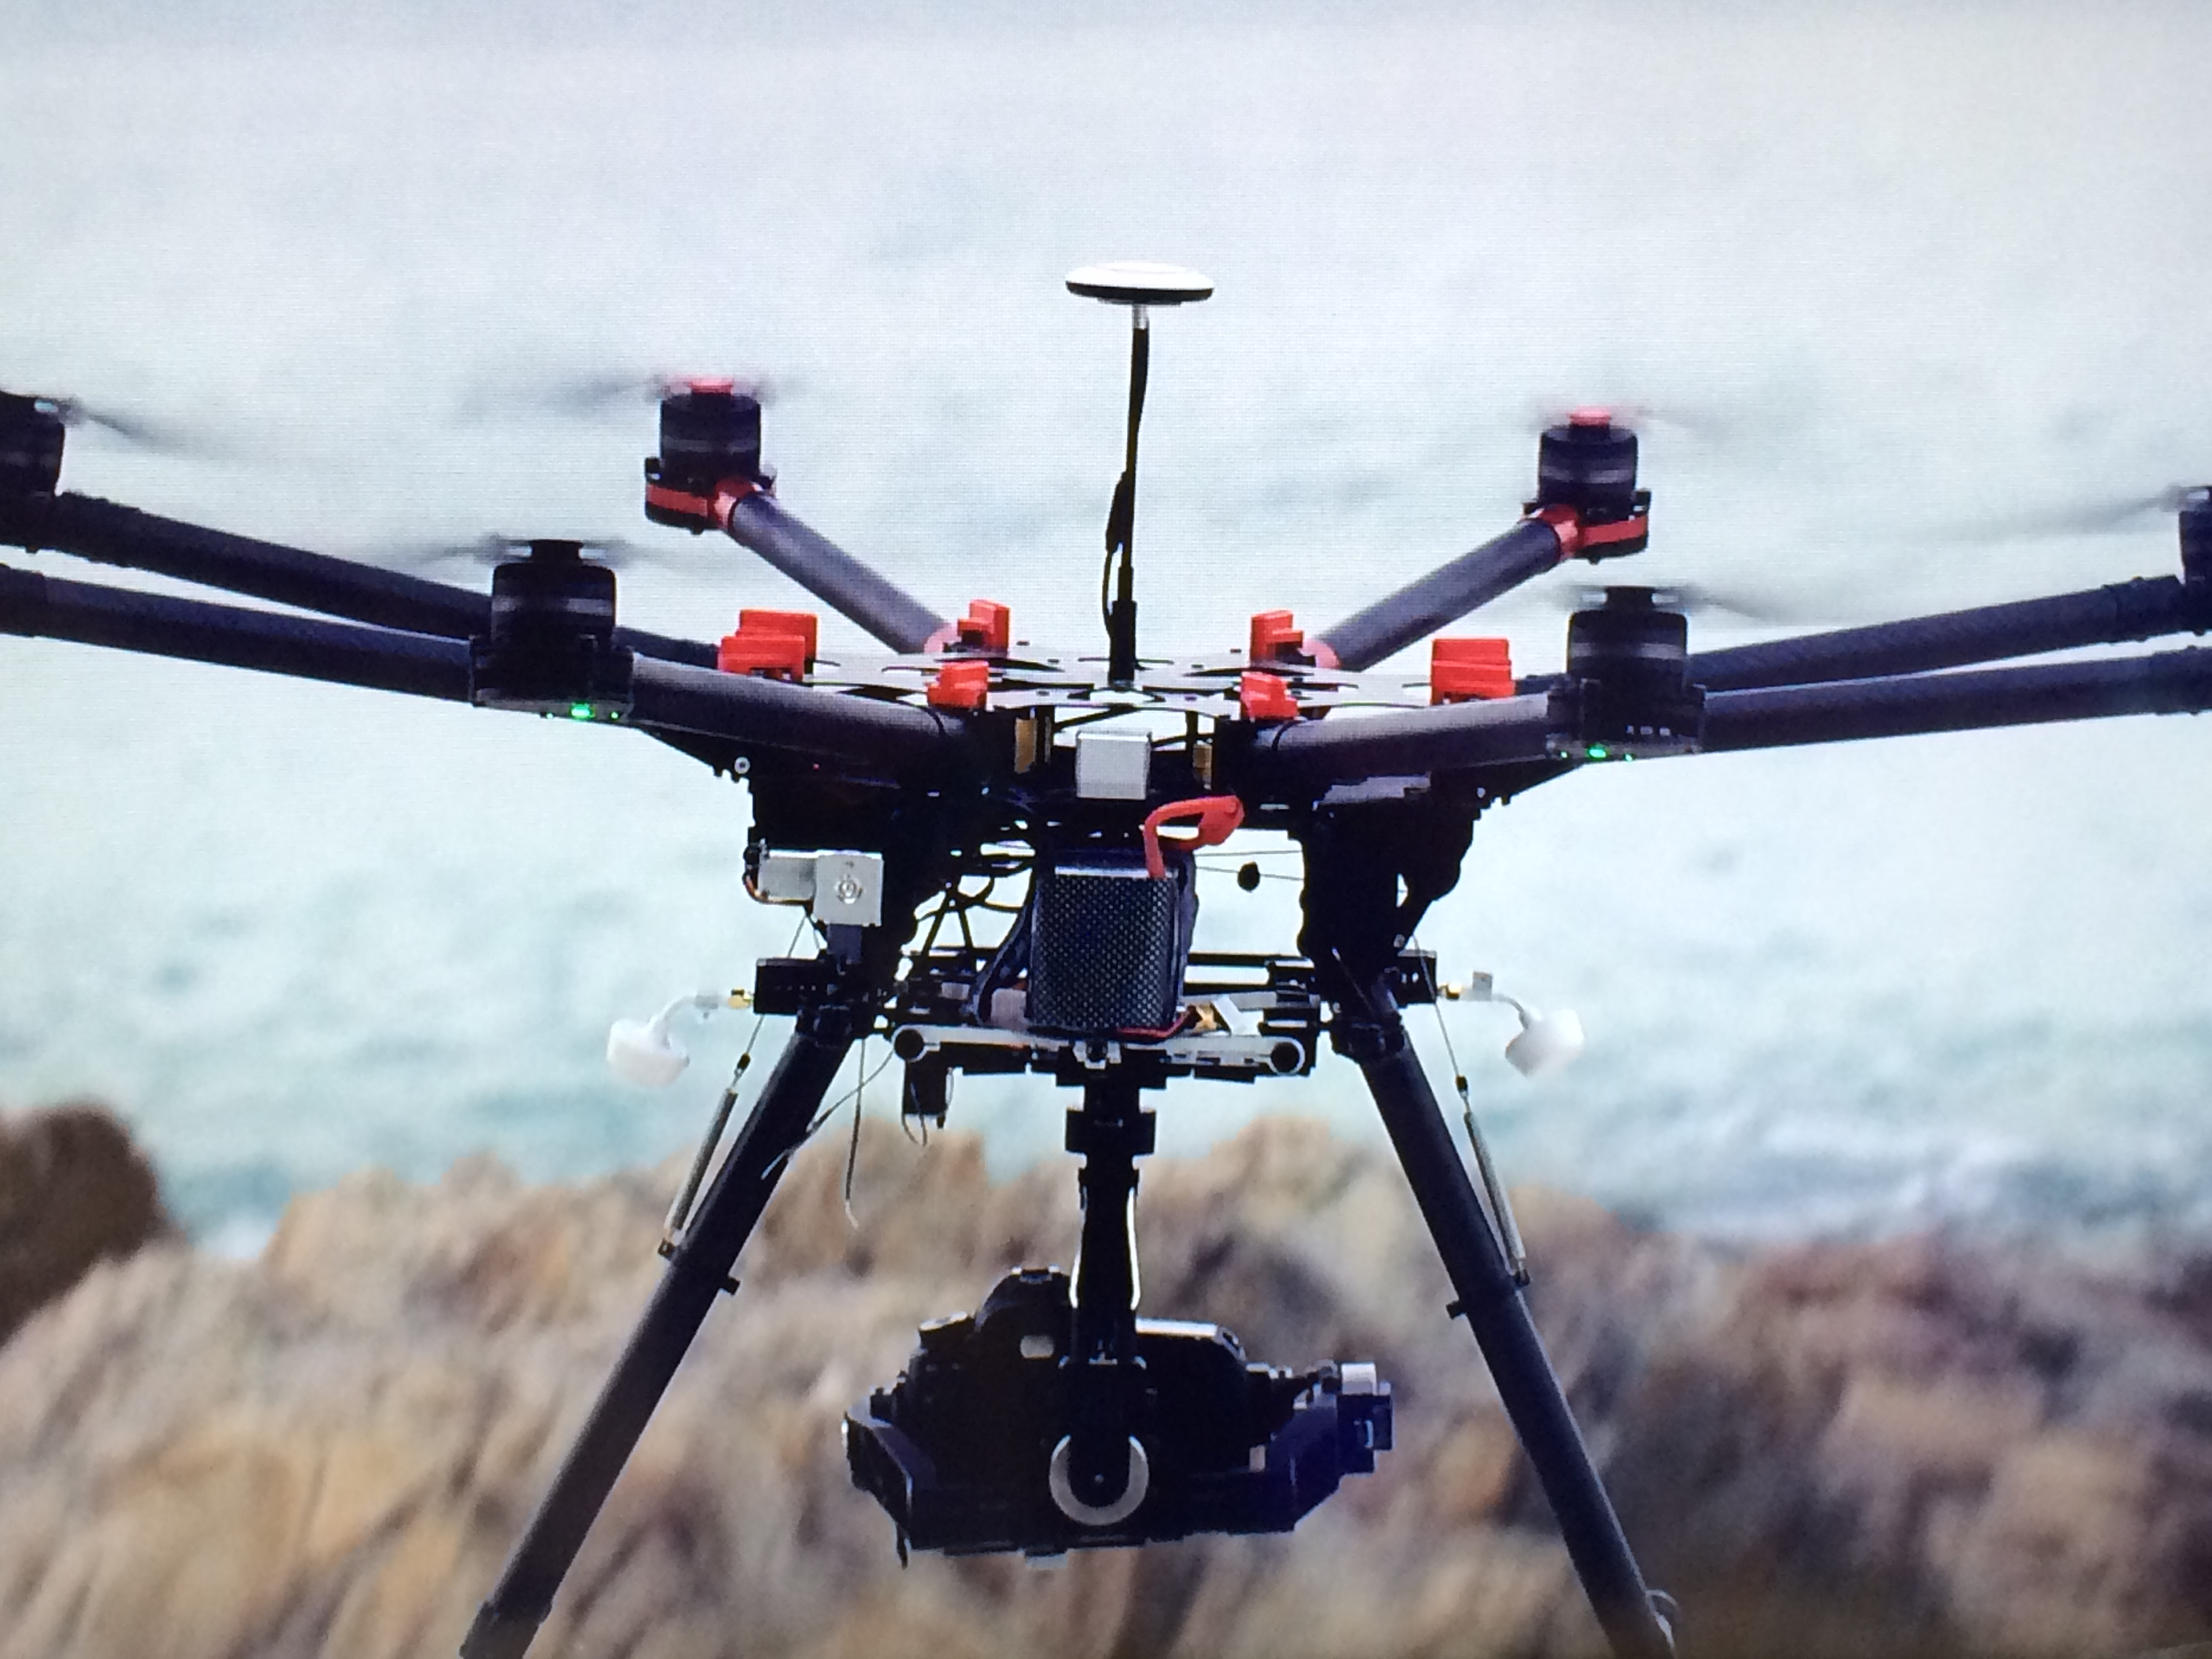 Pro-Quality Aerial Photography Goes Plug-and-Play with the DJI S1000